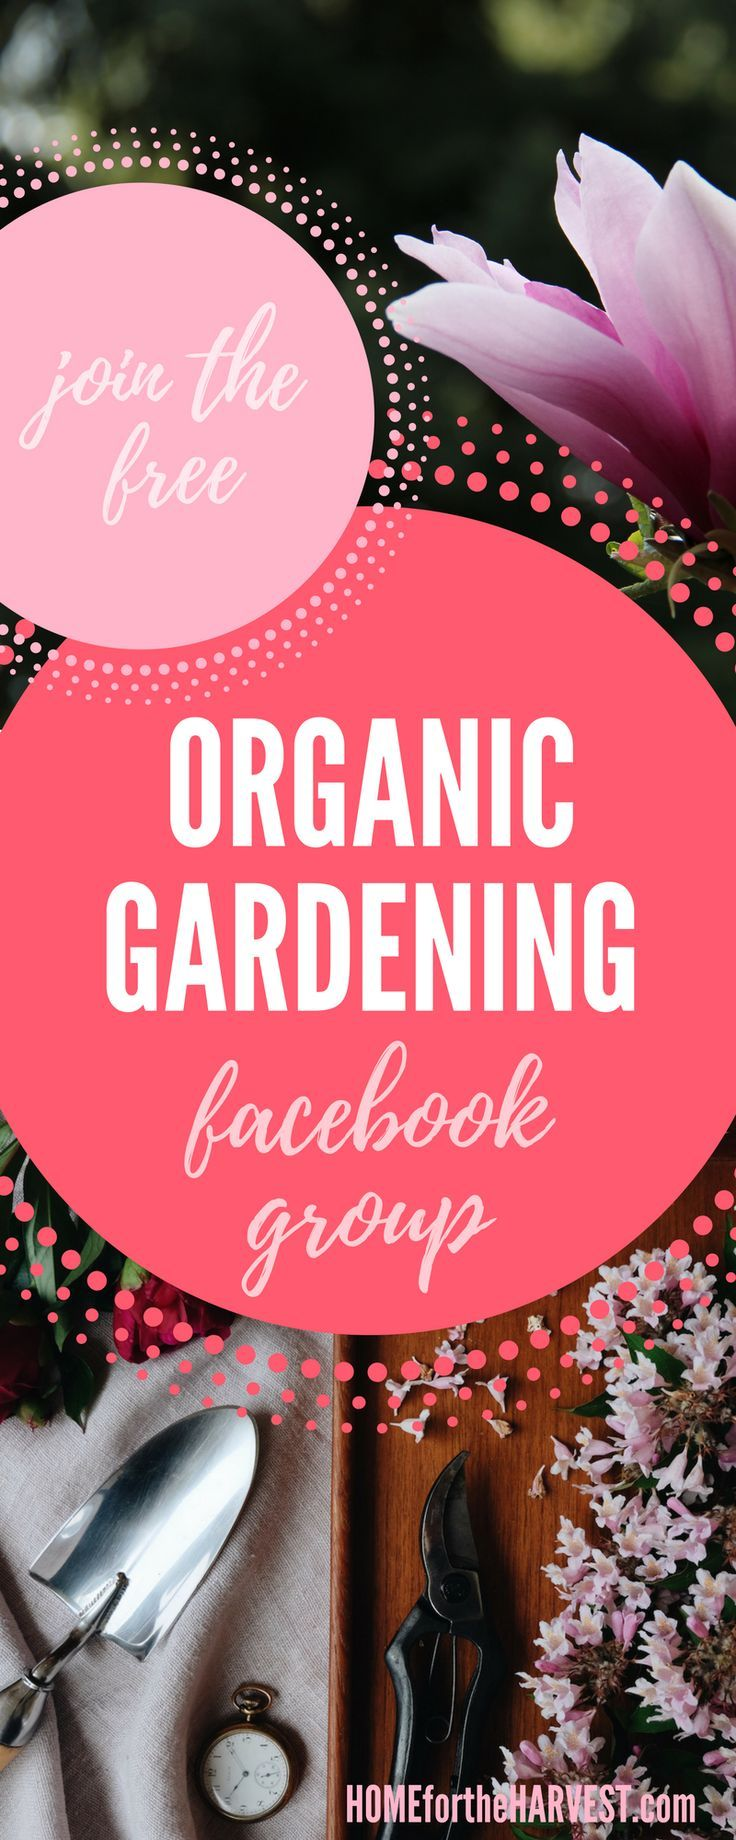 This free Facebook group will help you learn to become a better organic gardener! Share your photos, ask questions, and connect with other gardeners. Sharing our experiences and helping each other out makes us all better gardeners :) #organicgardening #organicgarden #gardening #gardeninggroup #facebookgroup #learntogarden #facebook #howtogarden #garden